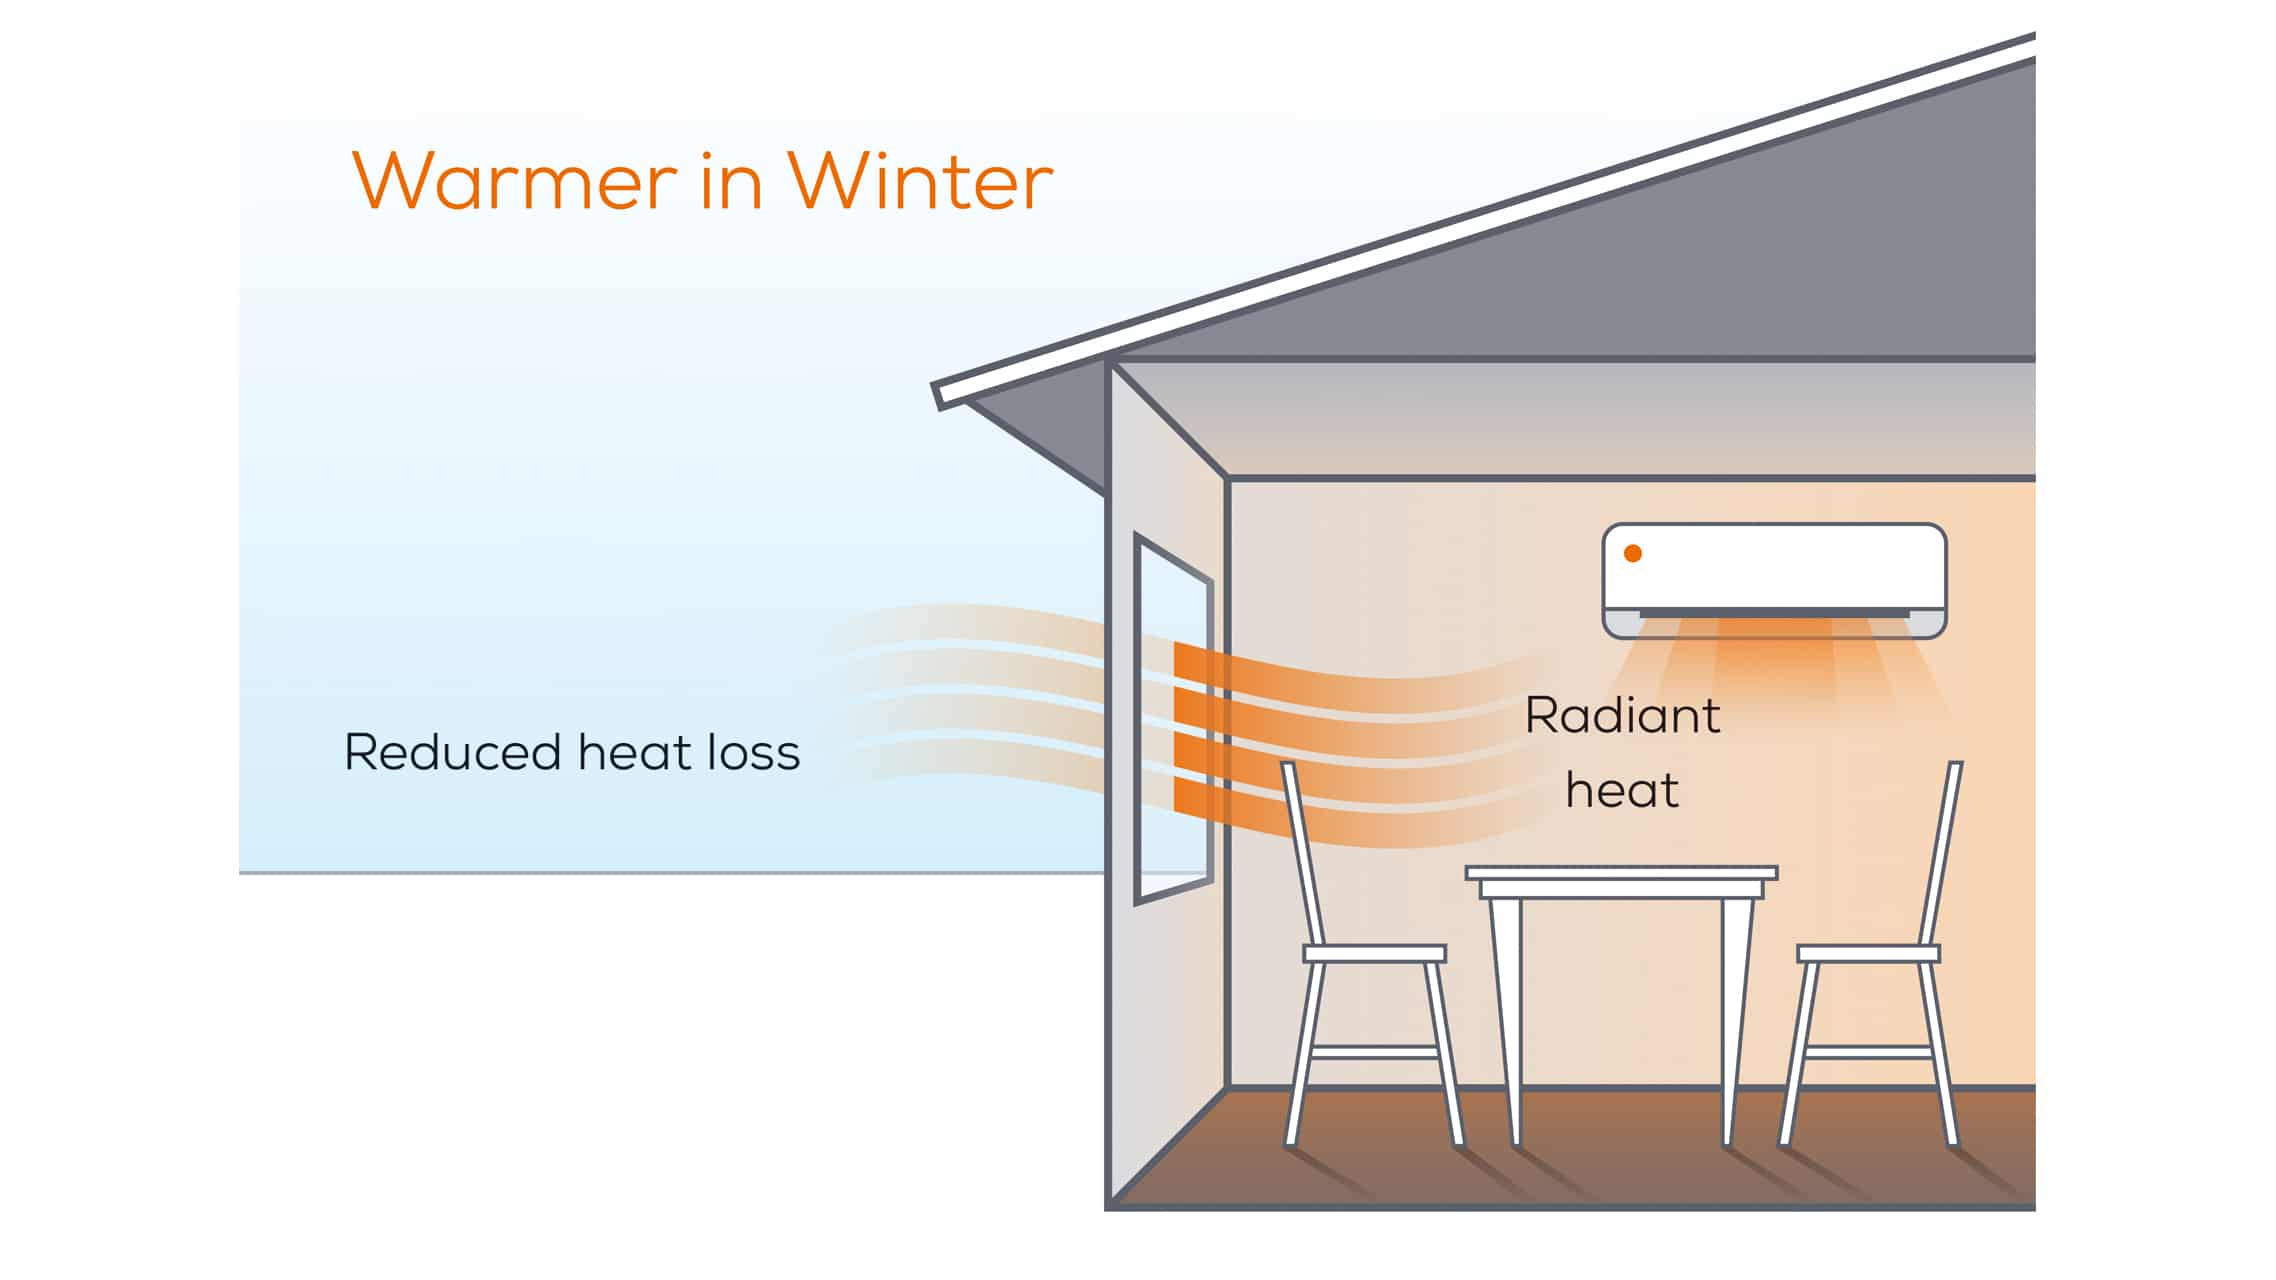 Windows keep home warmer in winter